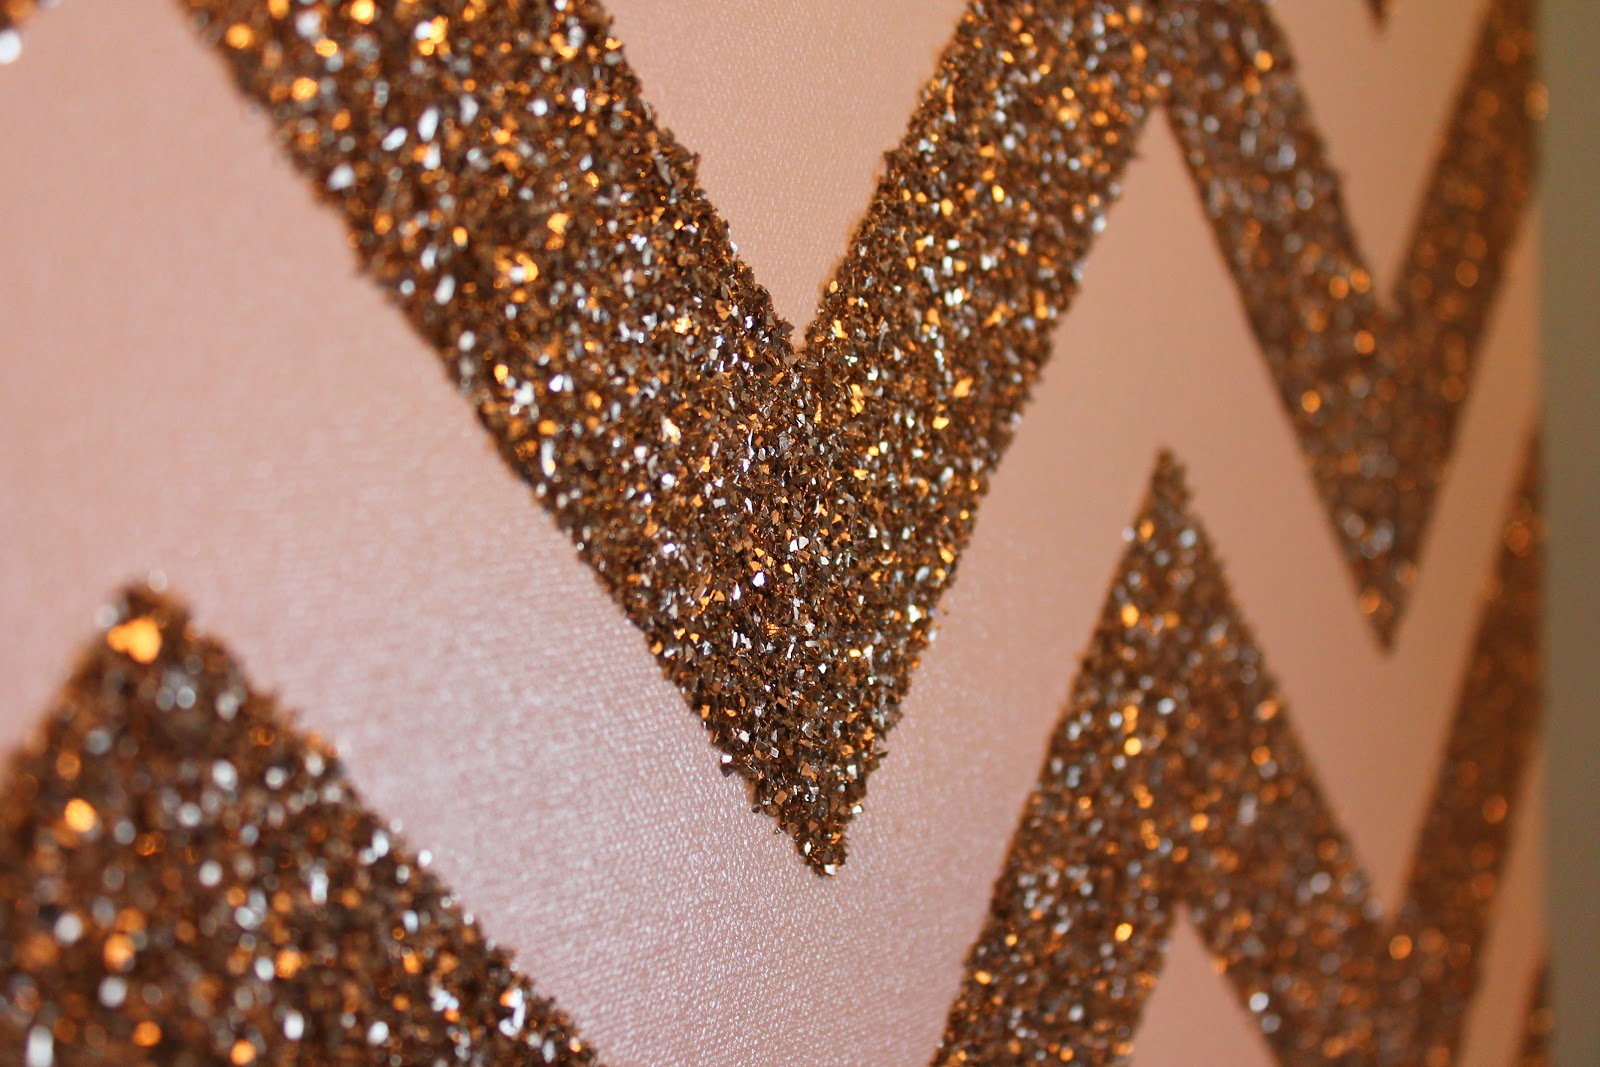 Simple White Glitter Paint For Walls Placement - Lentine ...